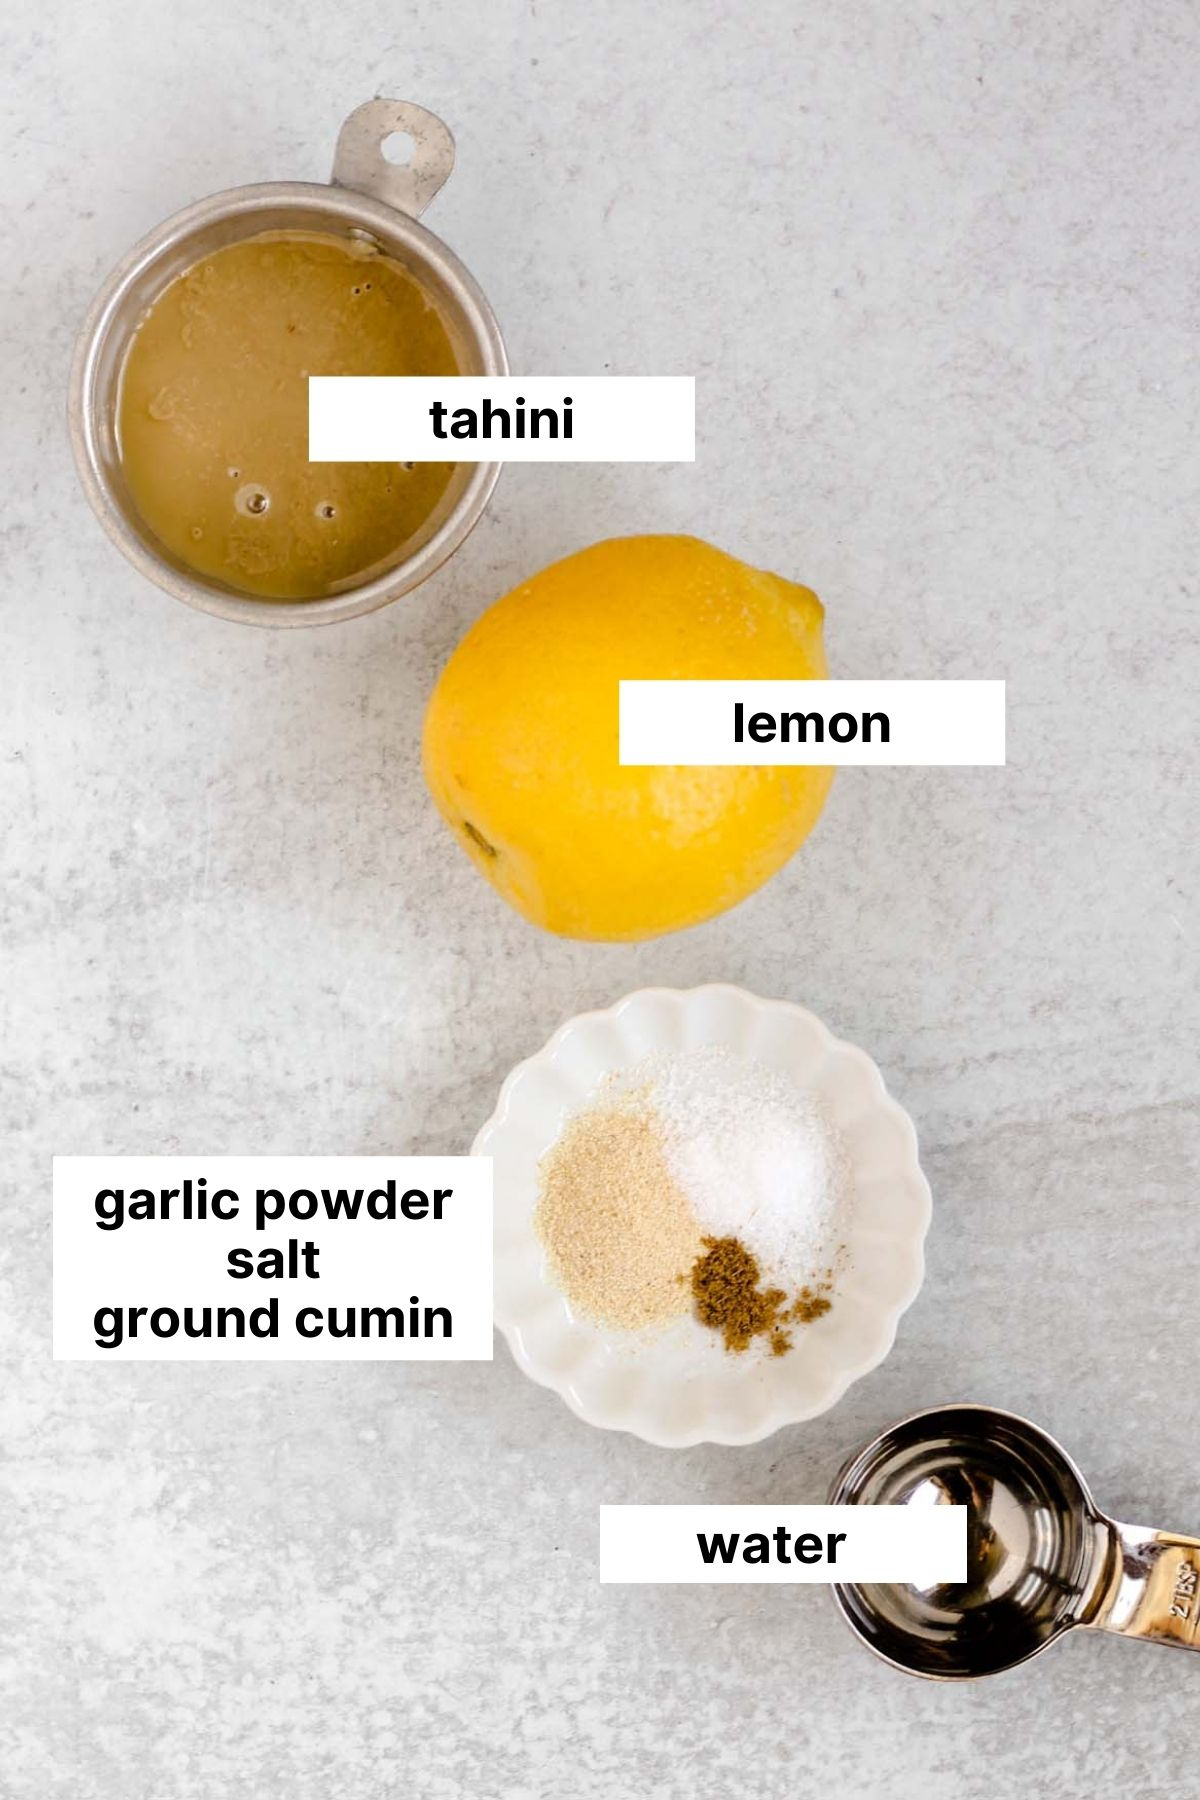 Labeled ingredients needed for tahini dressing.